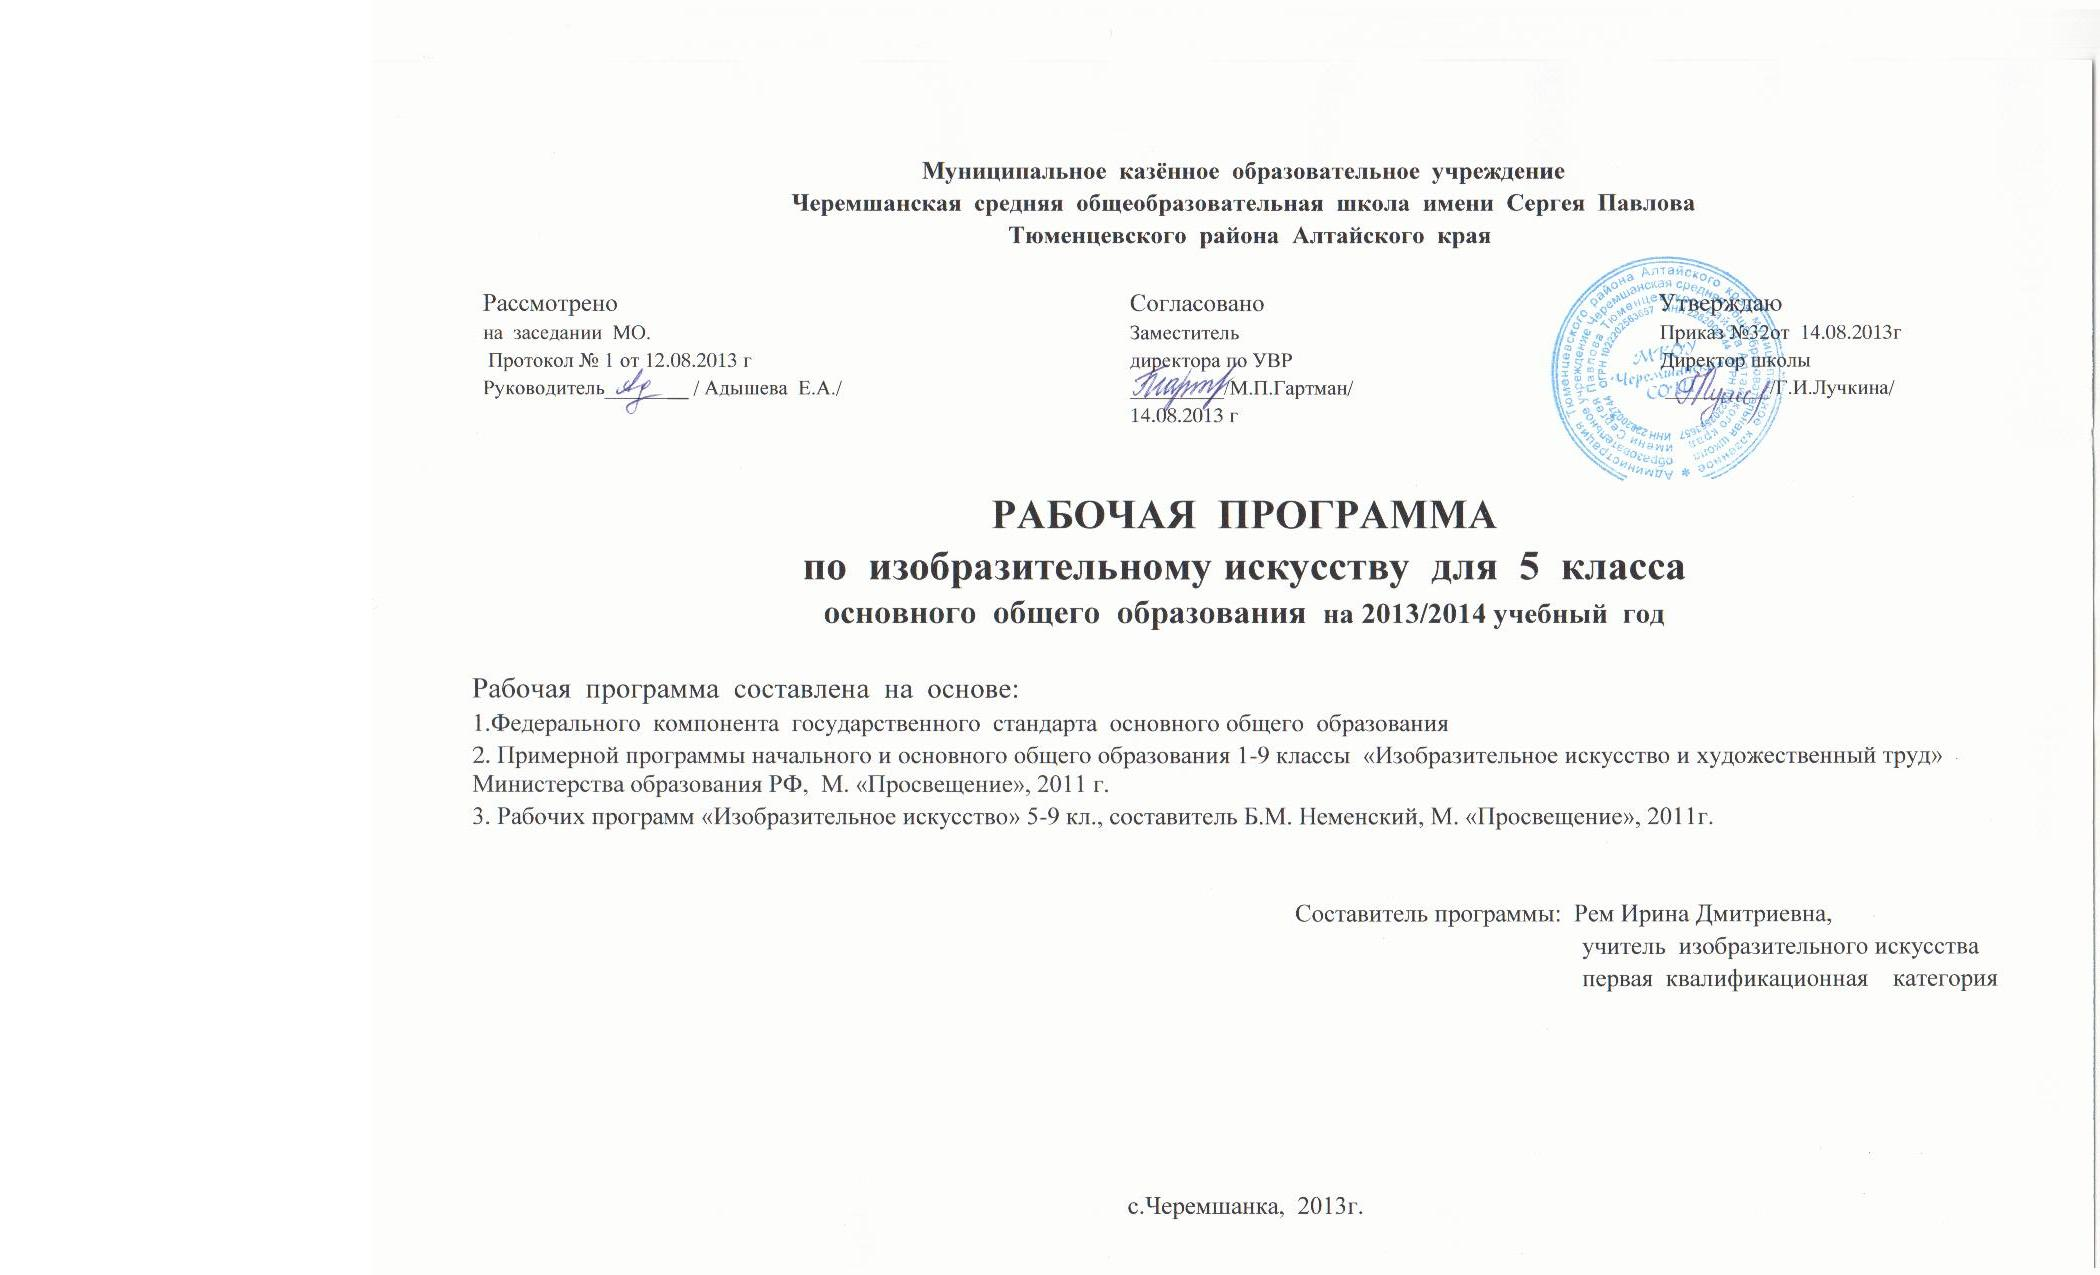 C:\Documents and Settings\User4\Local Settings\Temporary Internet Files\Content.Word\сканы история 8 013.jpg